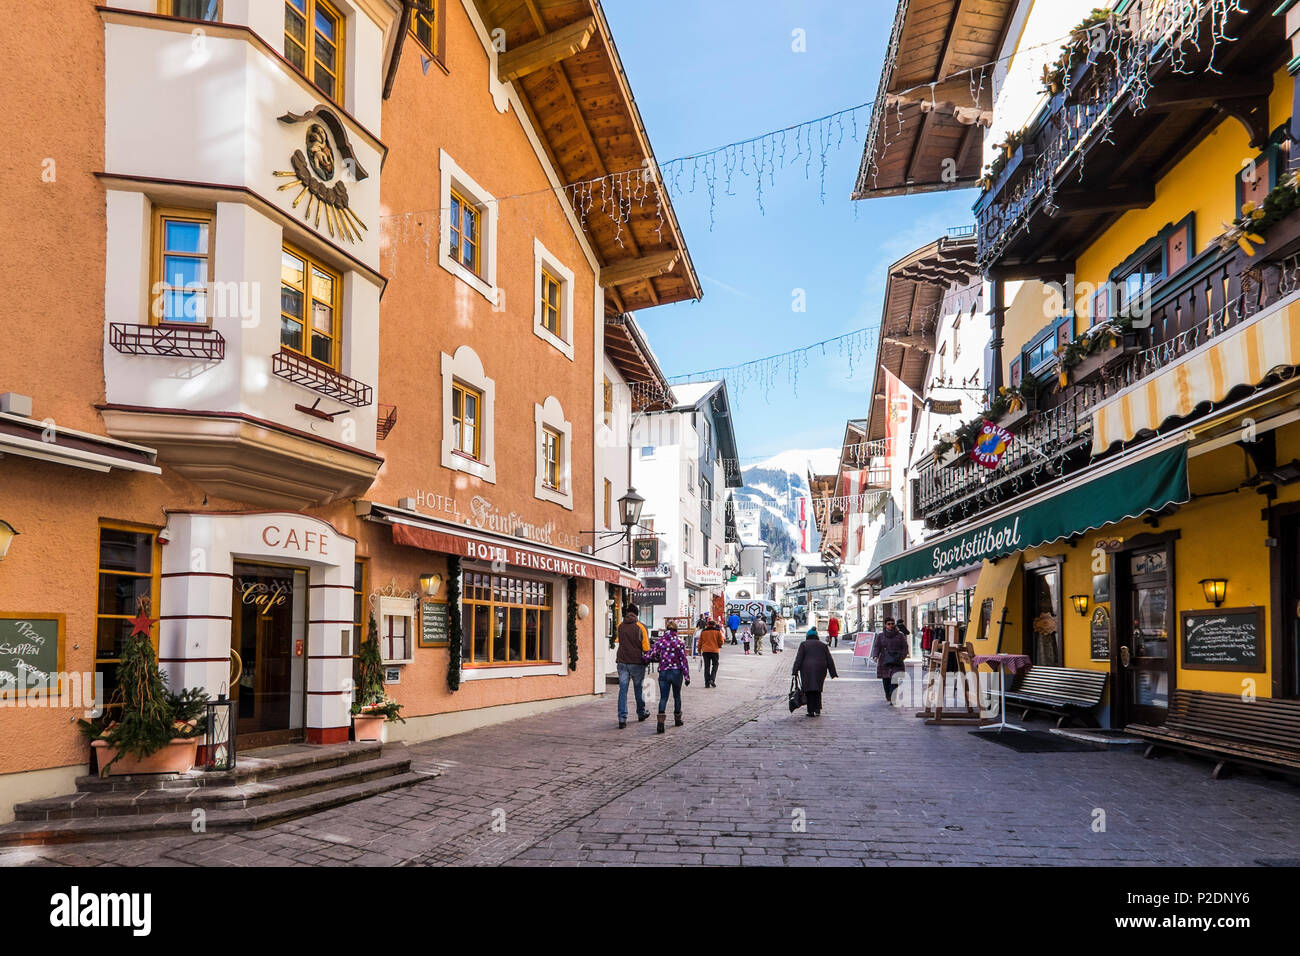 shopping area in Zell am See, Salzburger Land, Austria, Europe Stock Photo